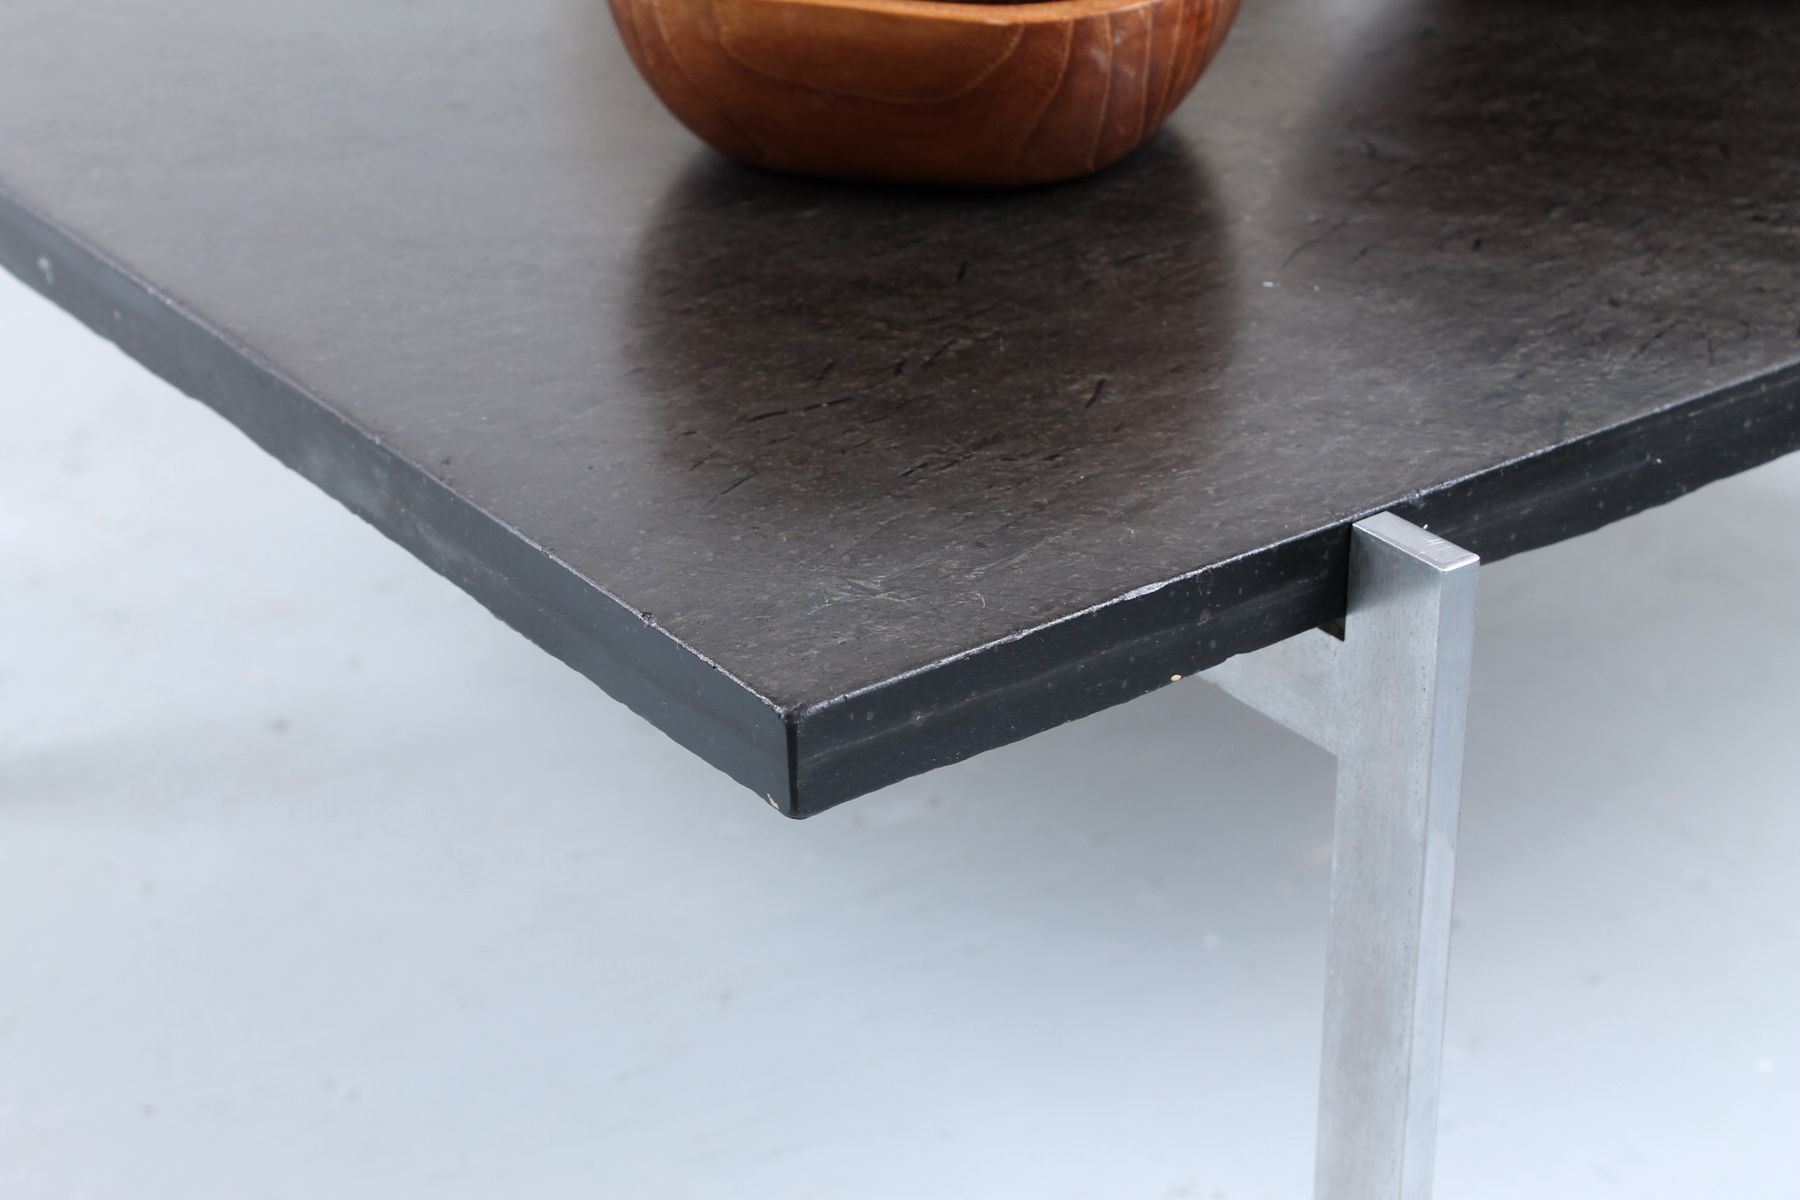 Pk 61 Coffee Table In Dark Stone By Poul Kjaerholm